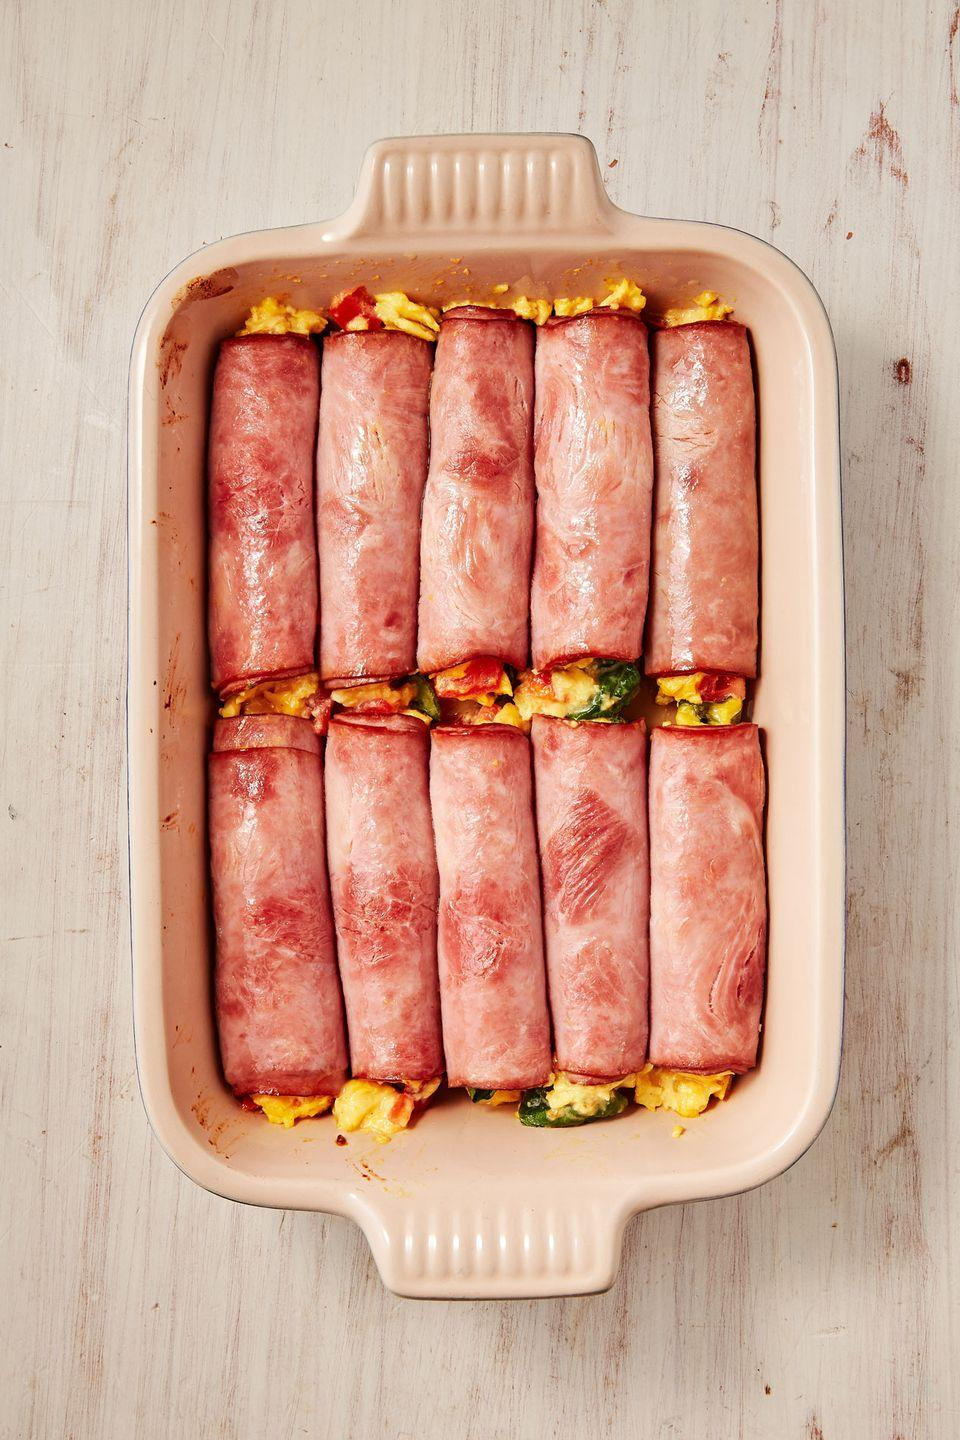 "<p>Who needs a tortilla when you have ham?</p><p>Get the recipe from <a href=""https://www.delish.com/cooking/recipe-ideas/recipes/a51155/ham-egg-cheese-roll-ups-recipe/"" rel=""nofollow noopener"" target=""_blank"" data-ylk=""slk:Delish"" class=""link rapid-noclick-resp"">Delish</a>.</p>"